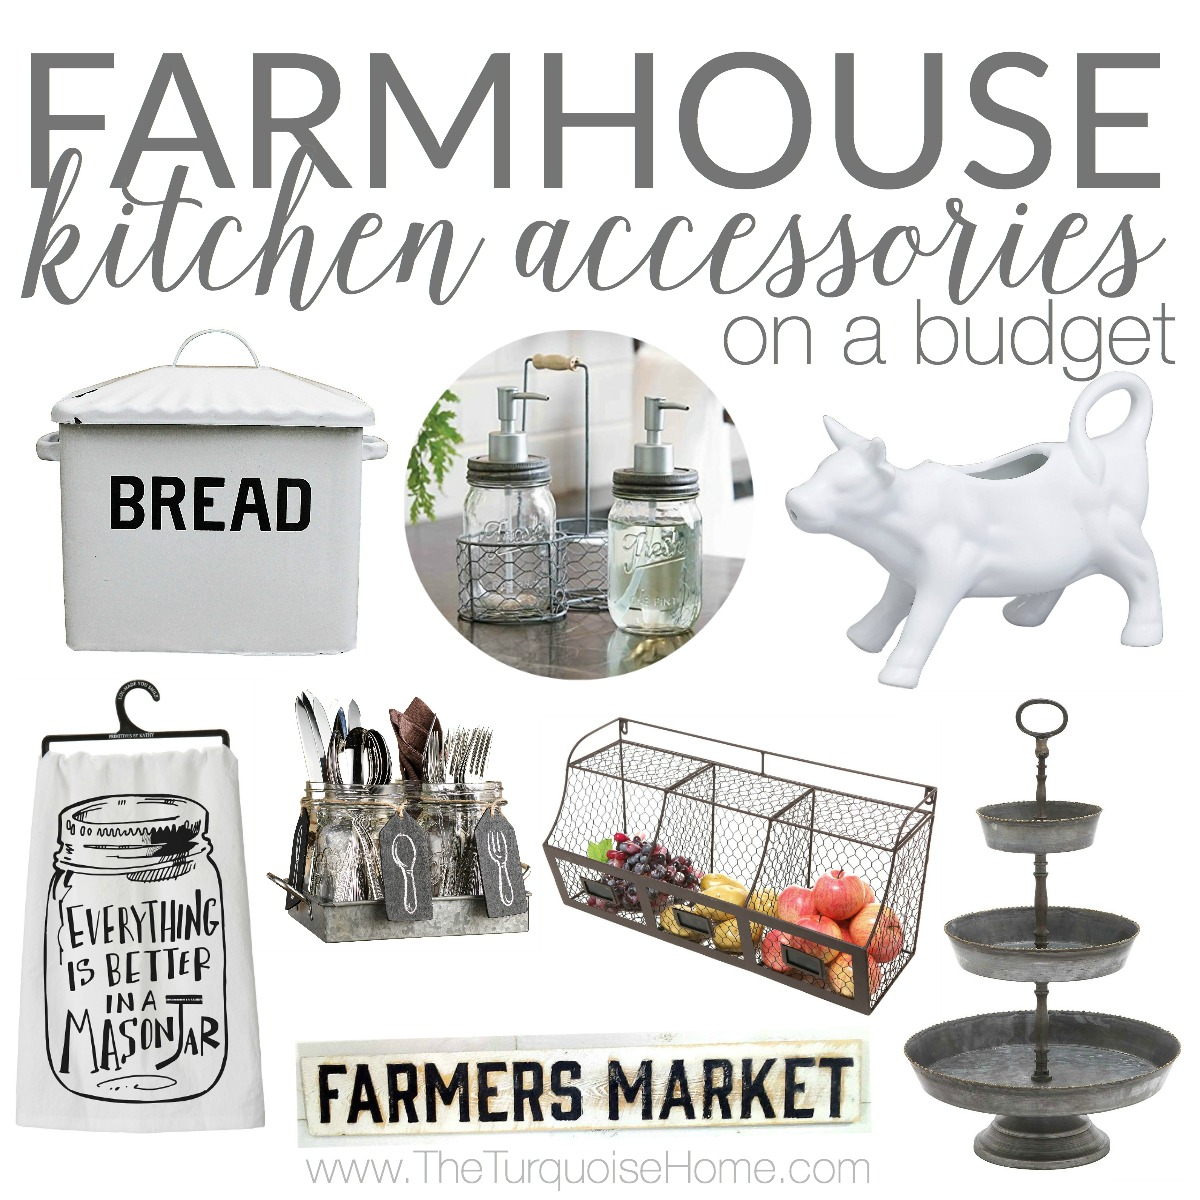 Farmhouse Kitchen Accessories on a Budget